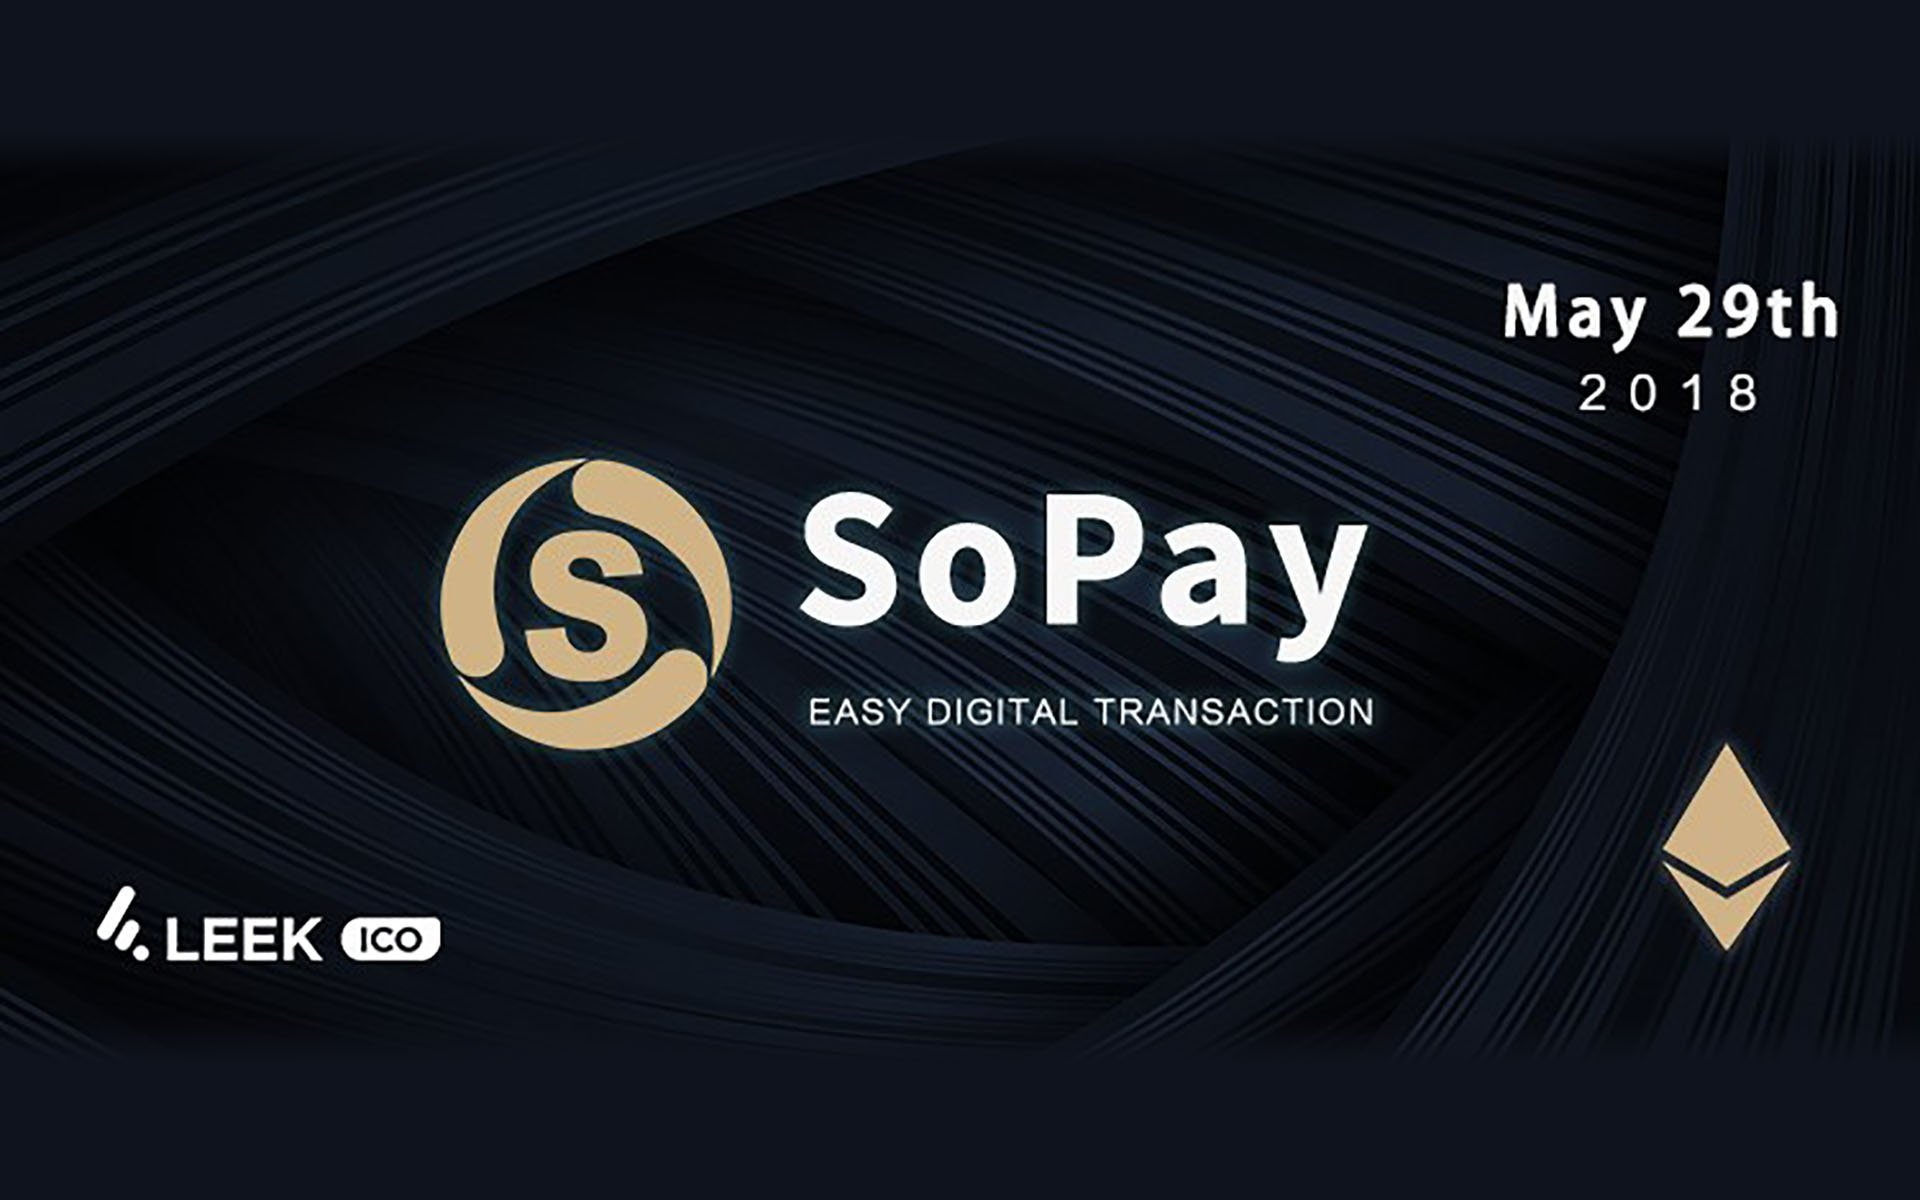 Revolutionary Cryptocurrency Payment Service Platform SoPay Launches Crowdfunding Sale on the LEEKICO Platform